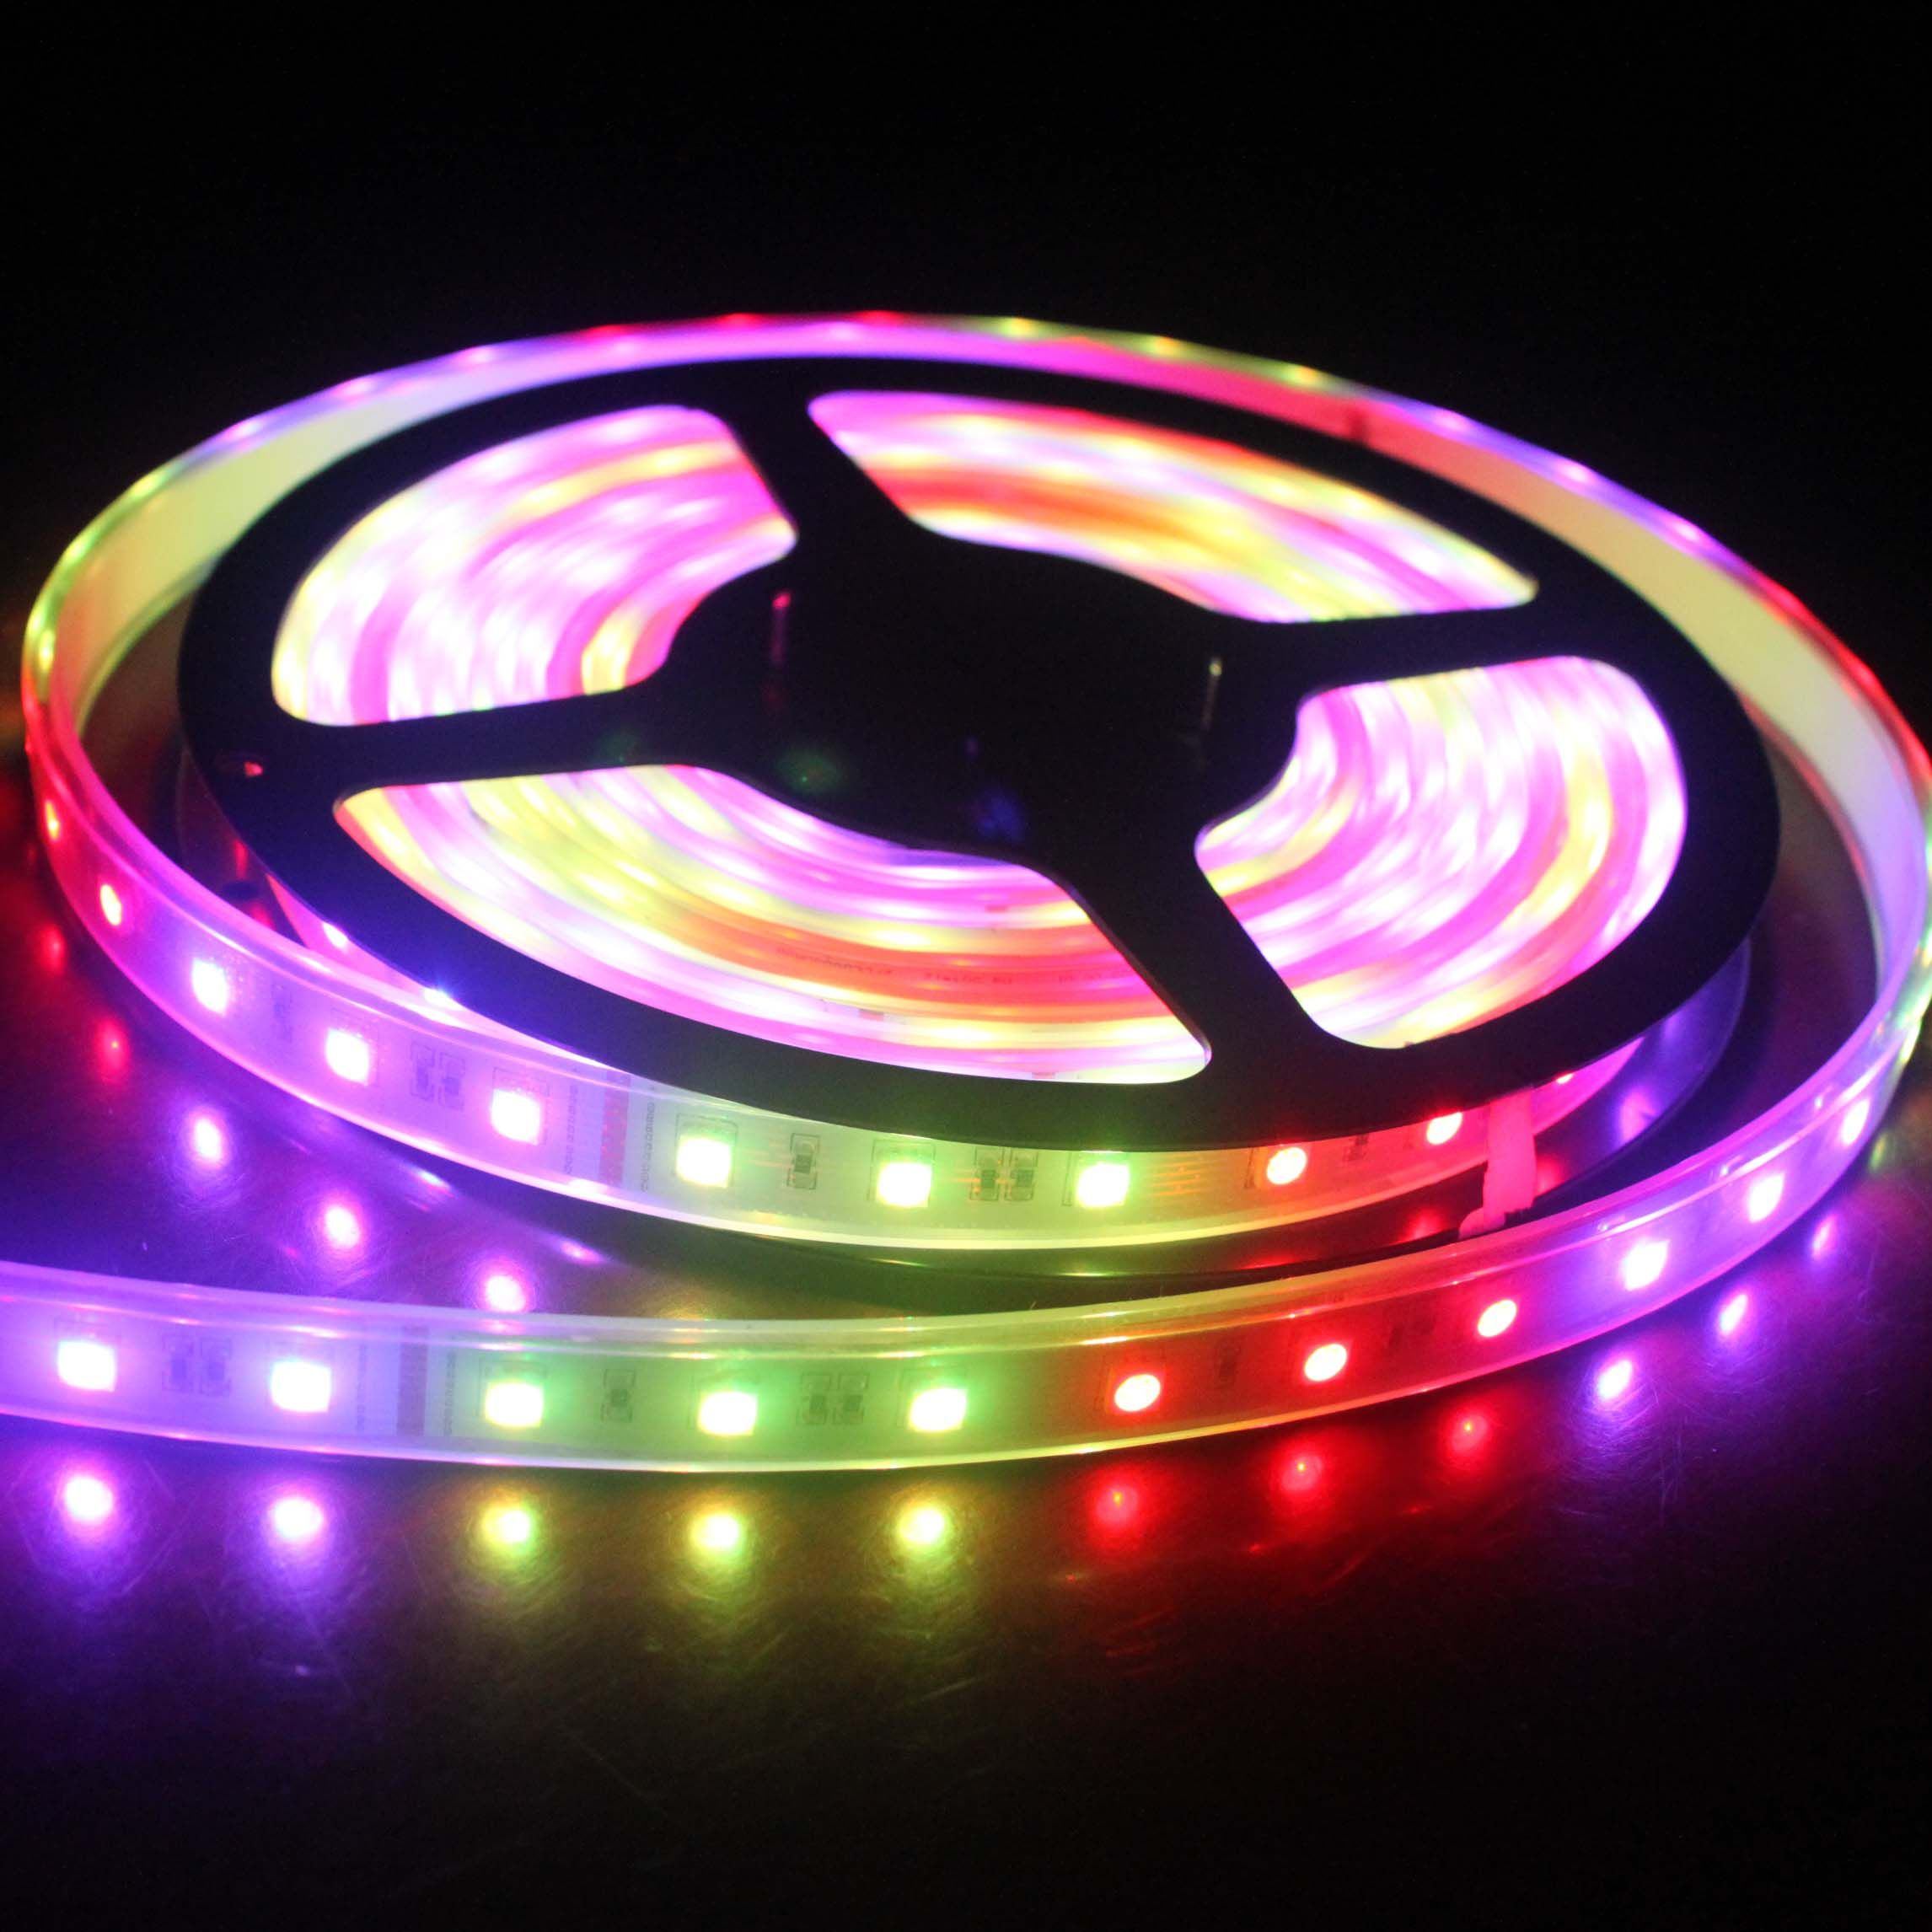 Think to save power by using power saving devices use of rgb led strip lights in most cost economic and efficient manner another type aloadofball Images